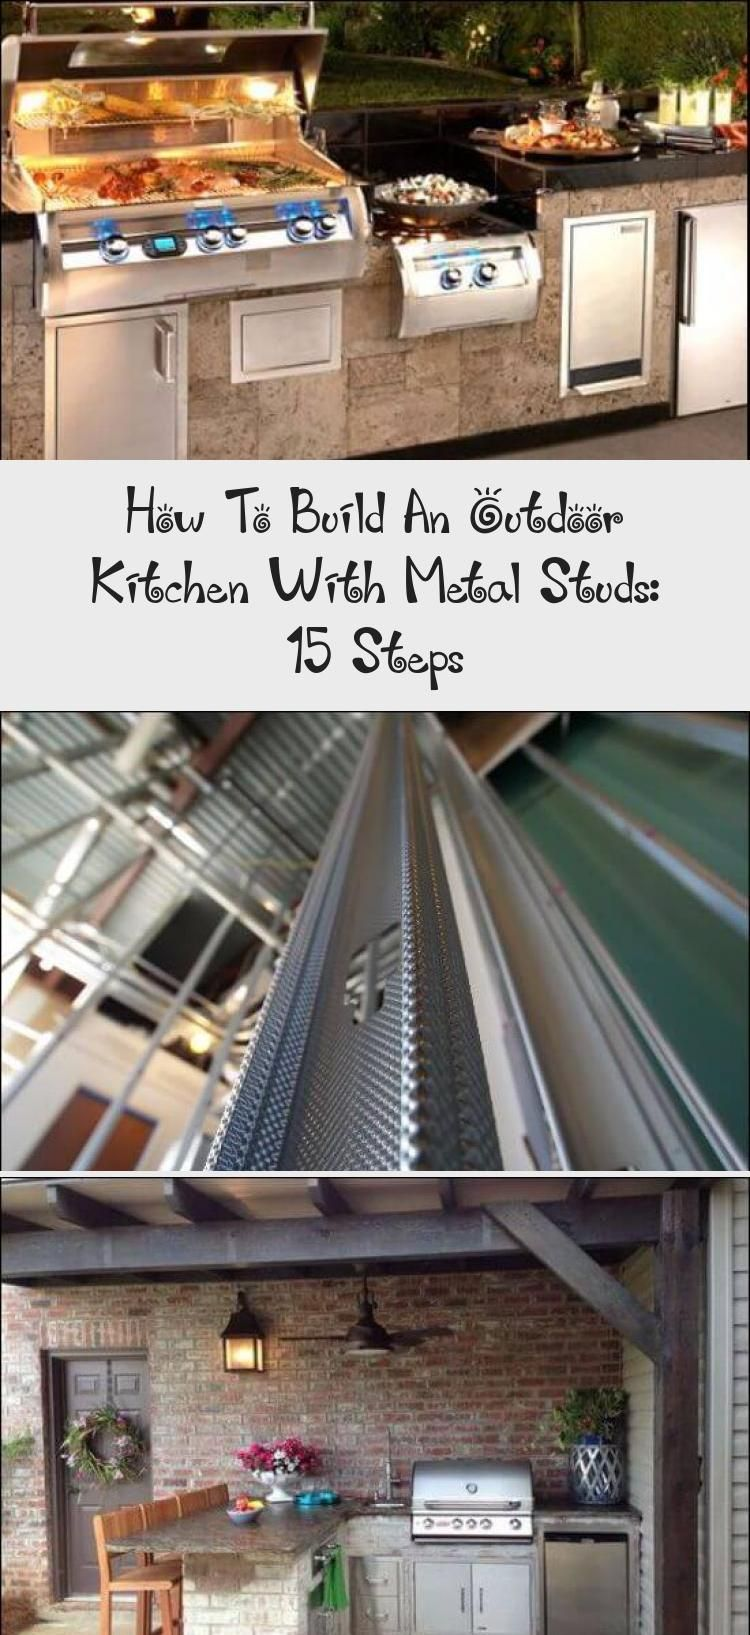 How To Build An Outdoor Kitchen With Metal Studs 15 Steps Build Outdoor Kitchen Diy Outdoor Kitchen Outdoor Kitchen Grill